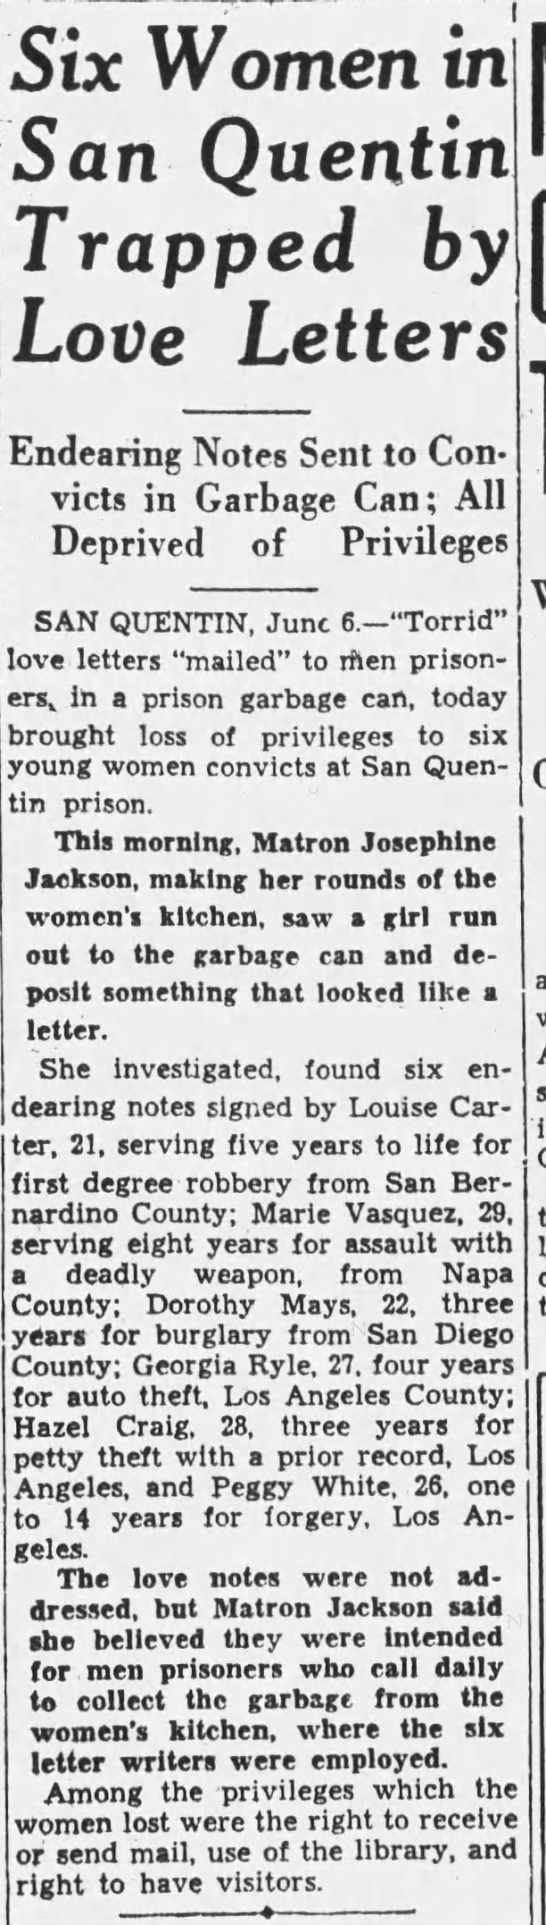 1933-06-06 San Quentin women send love letters in garbage cans -